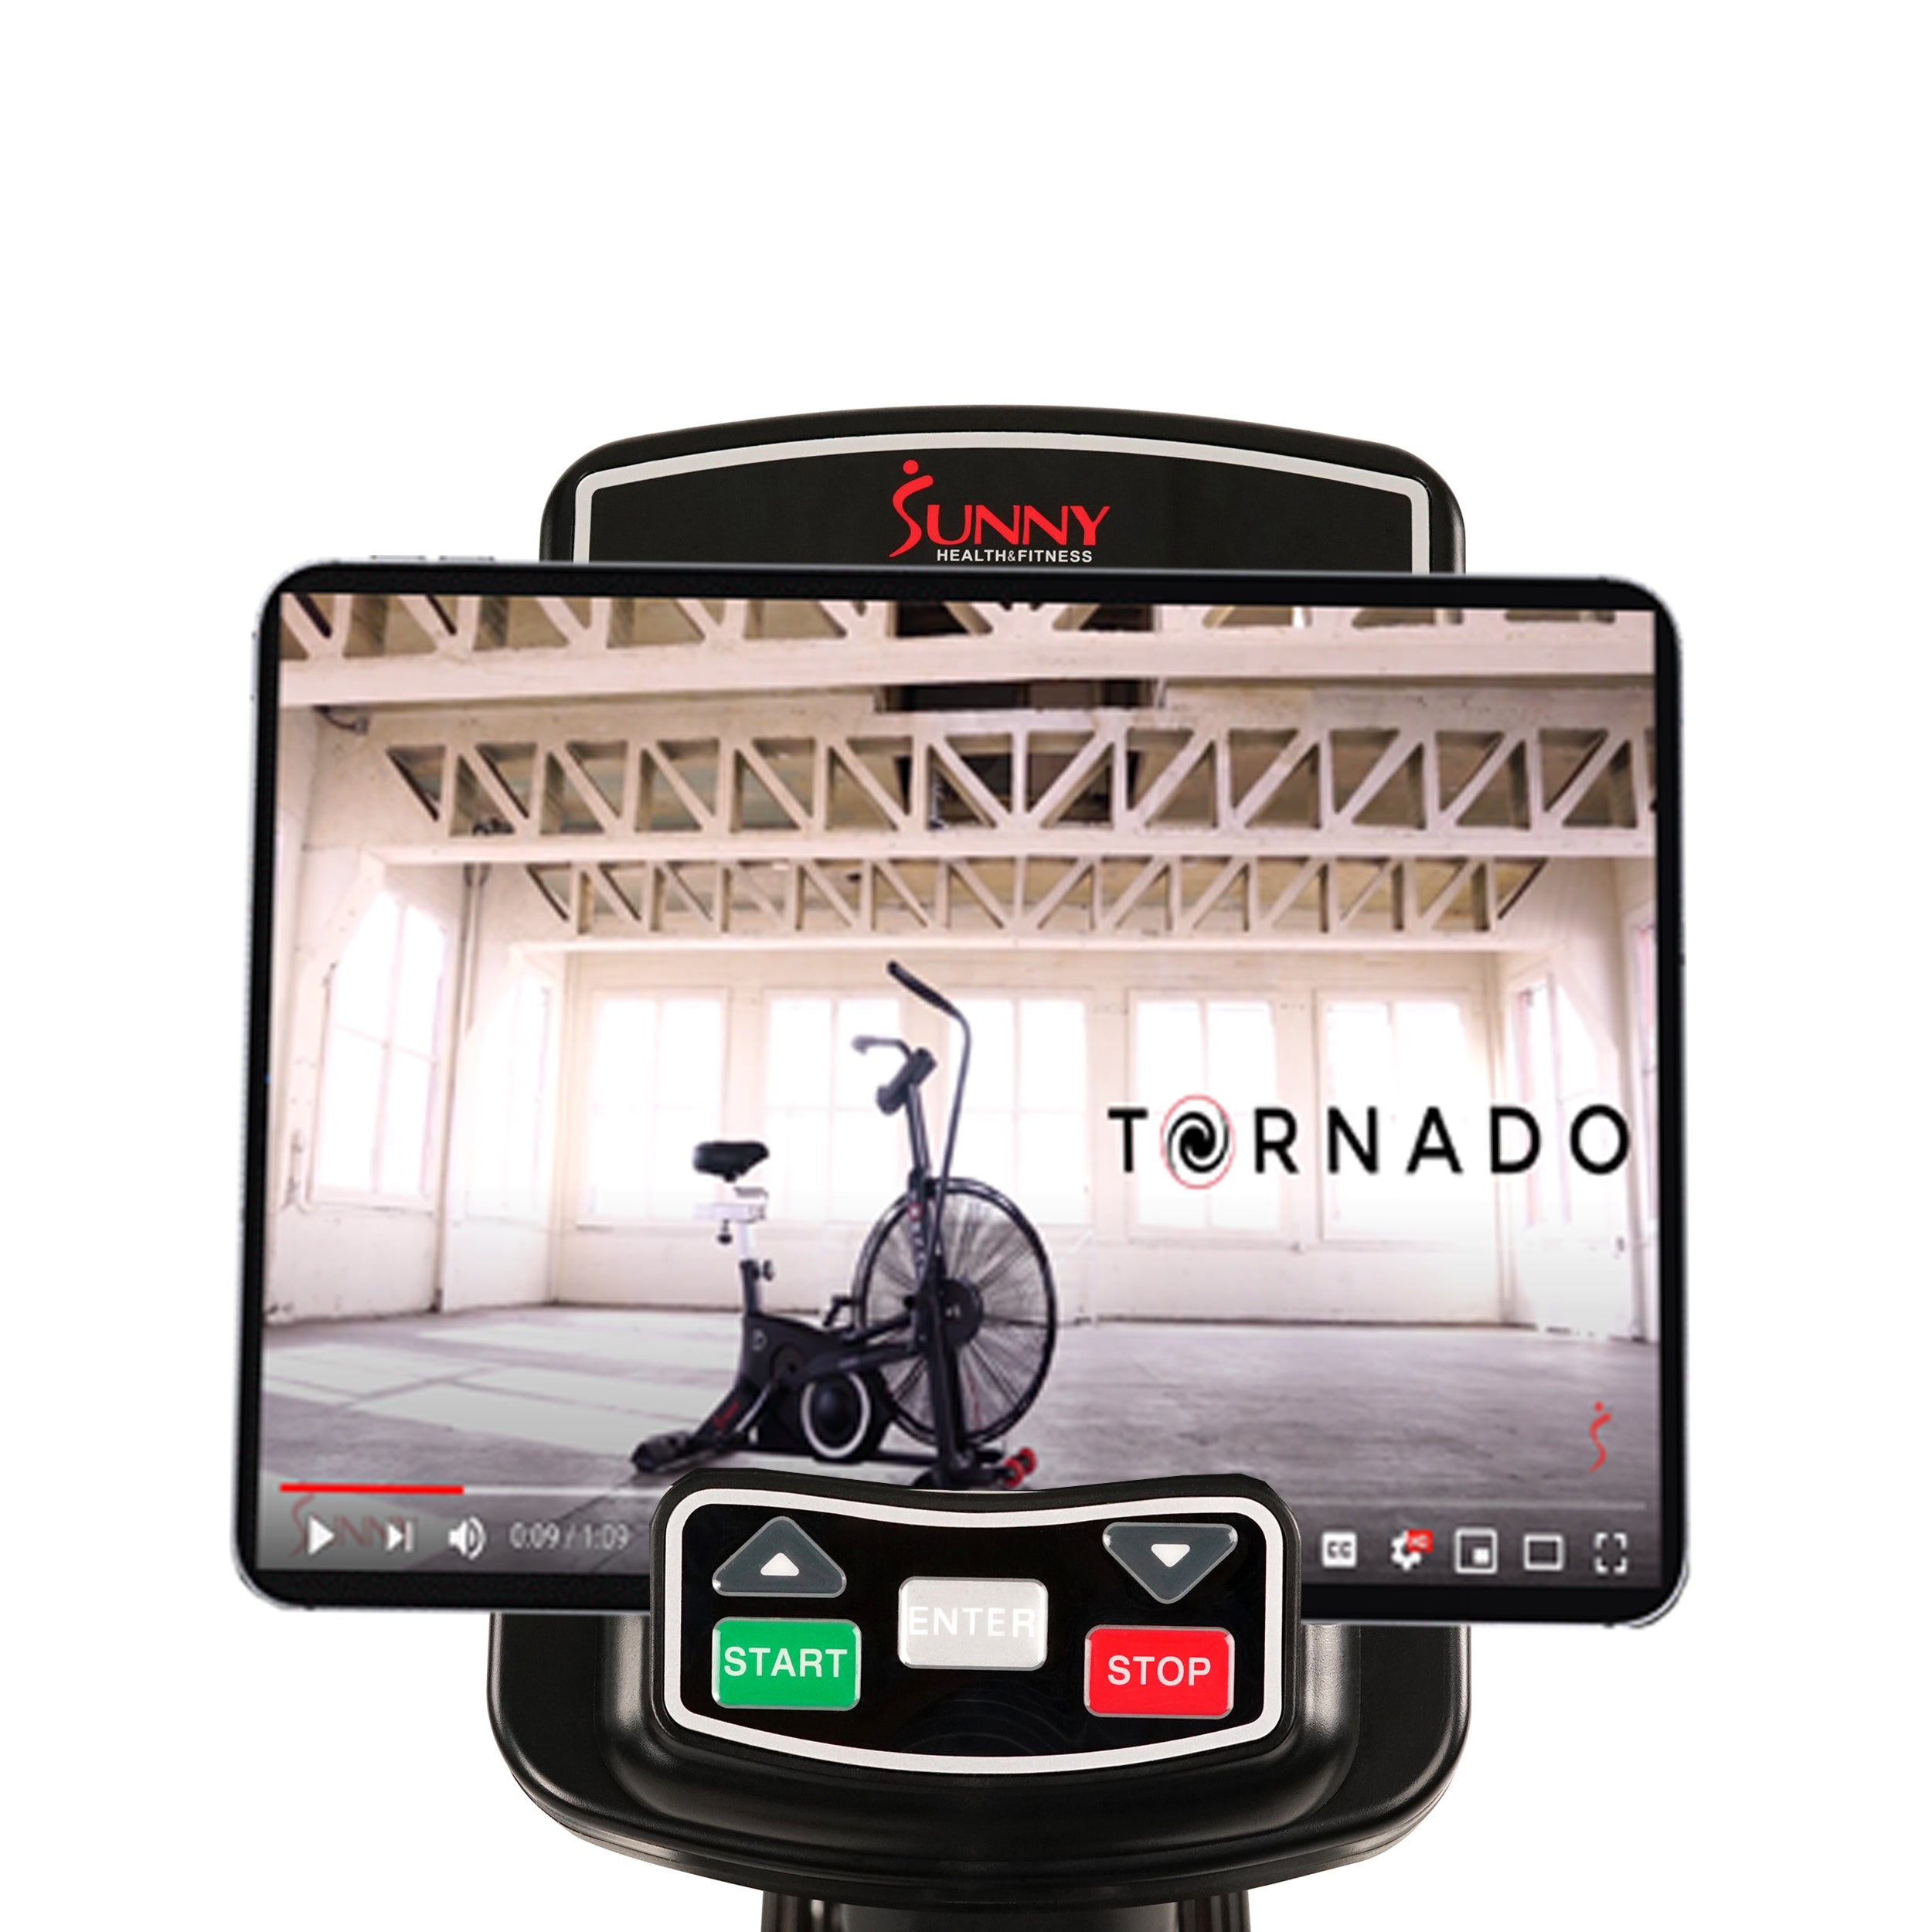 sunny-health-fitness-bikes-exercise-fan-bike-bluetooth-heart-rate-compatibility-tornado-LX-SF-B2729-monitor